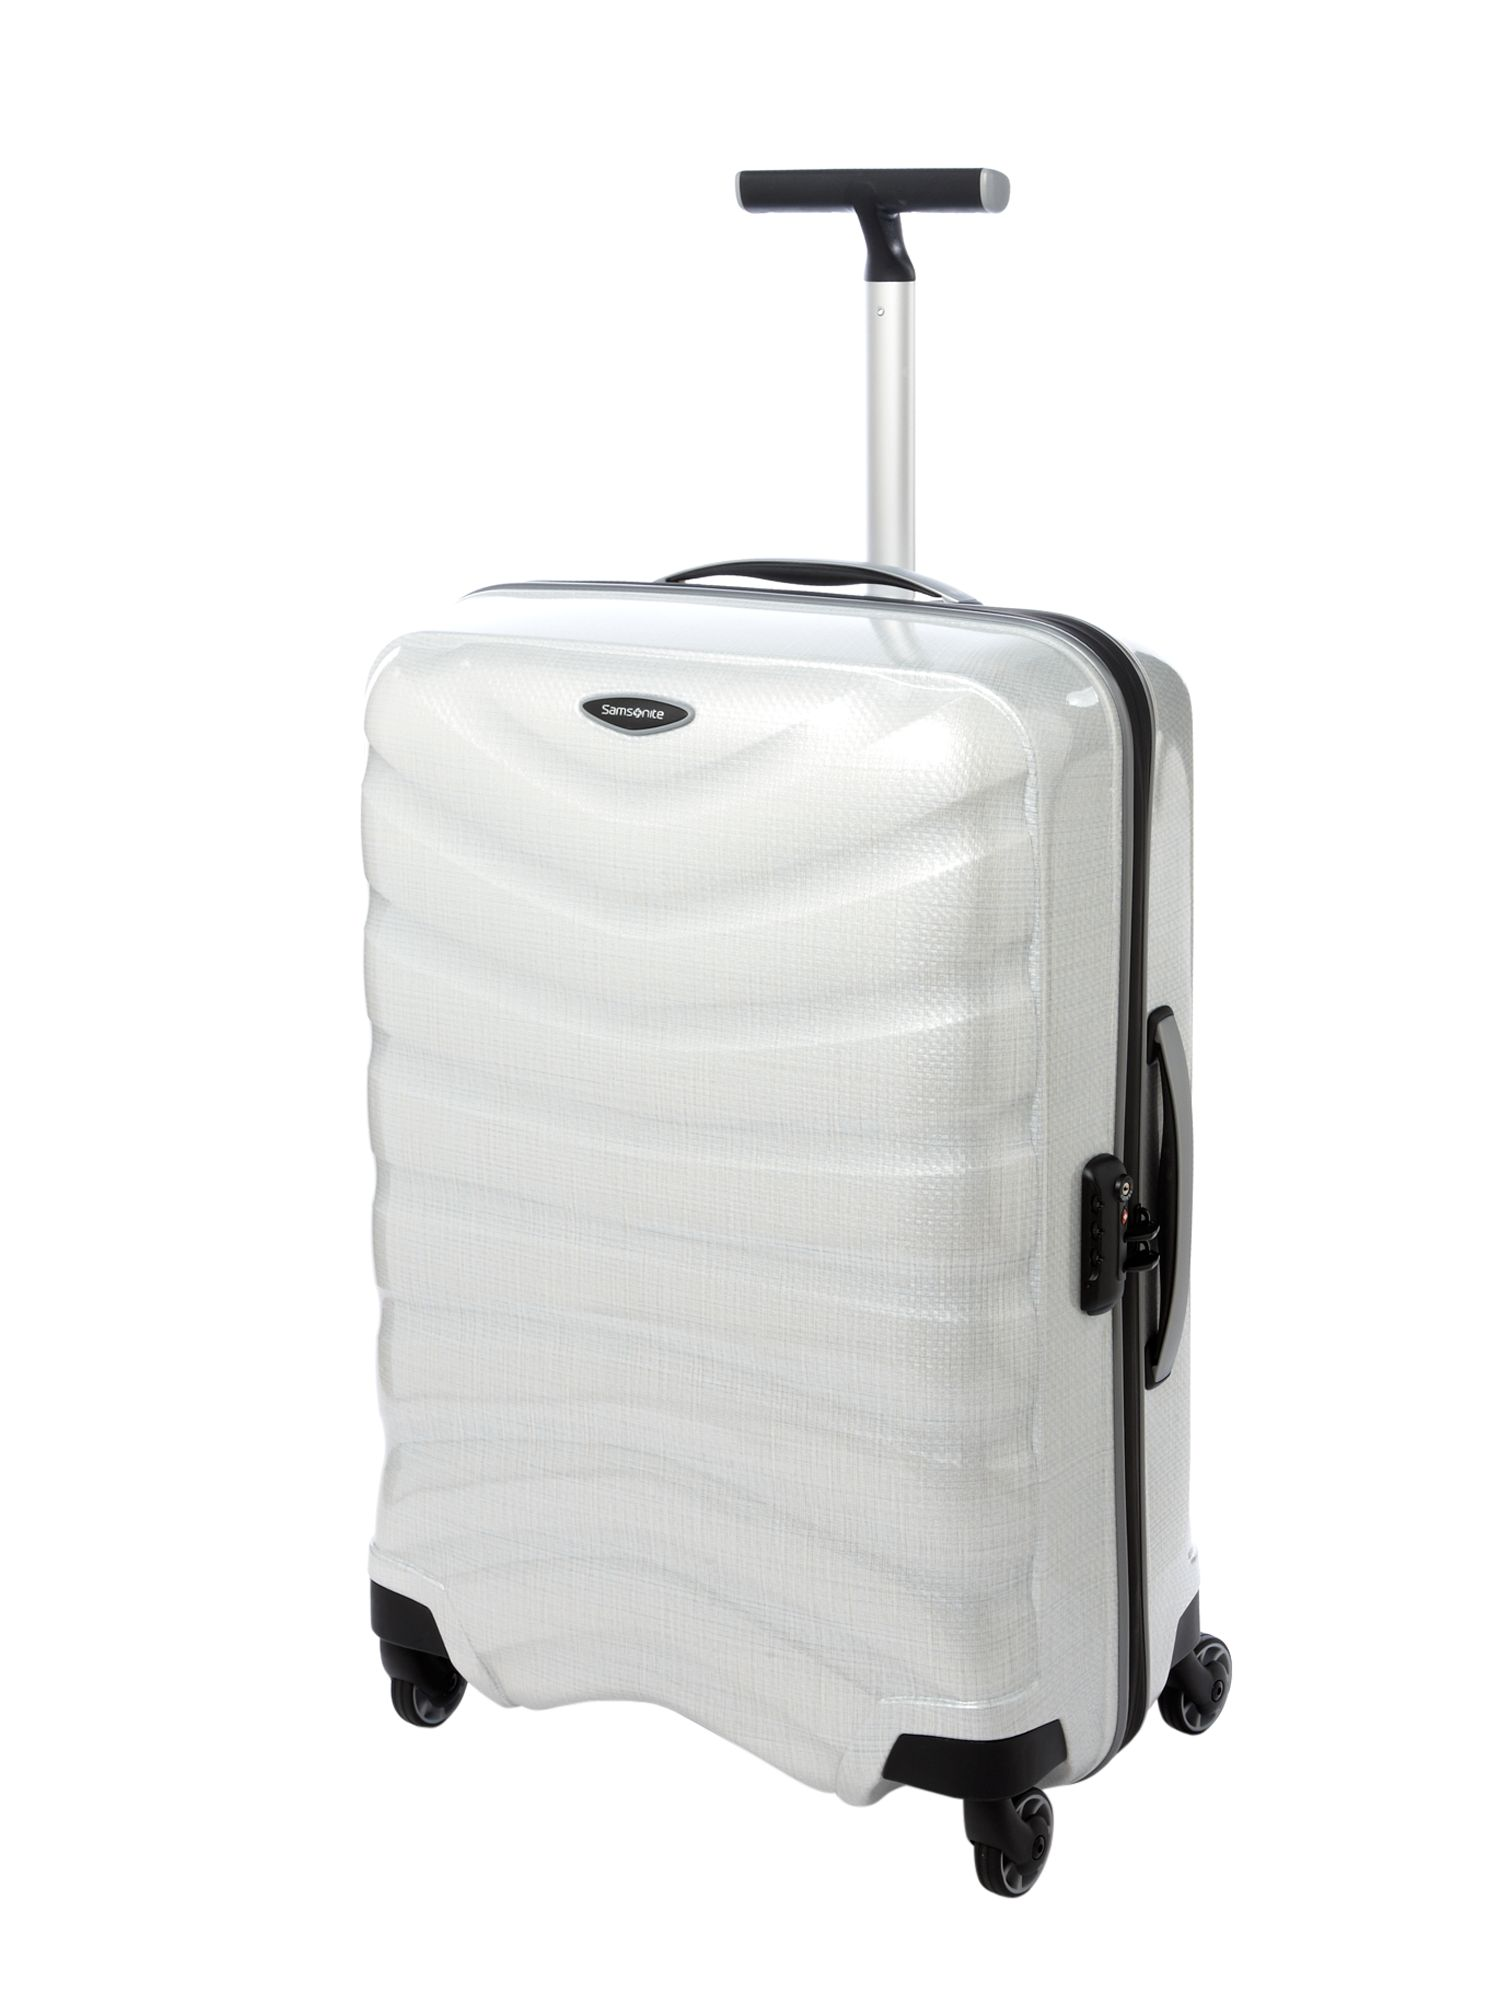 Firelite White 69cm 4 Wheel Case